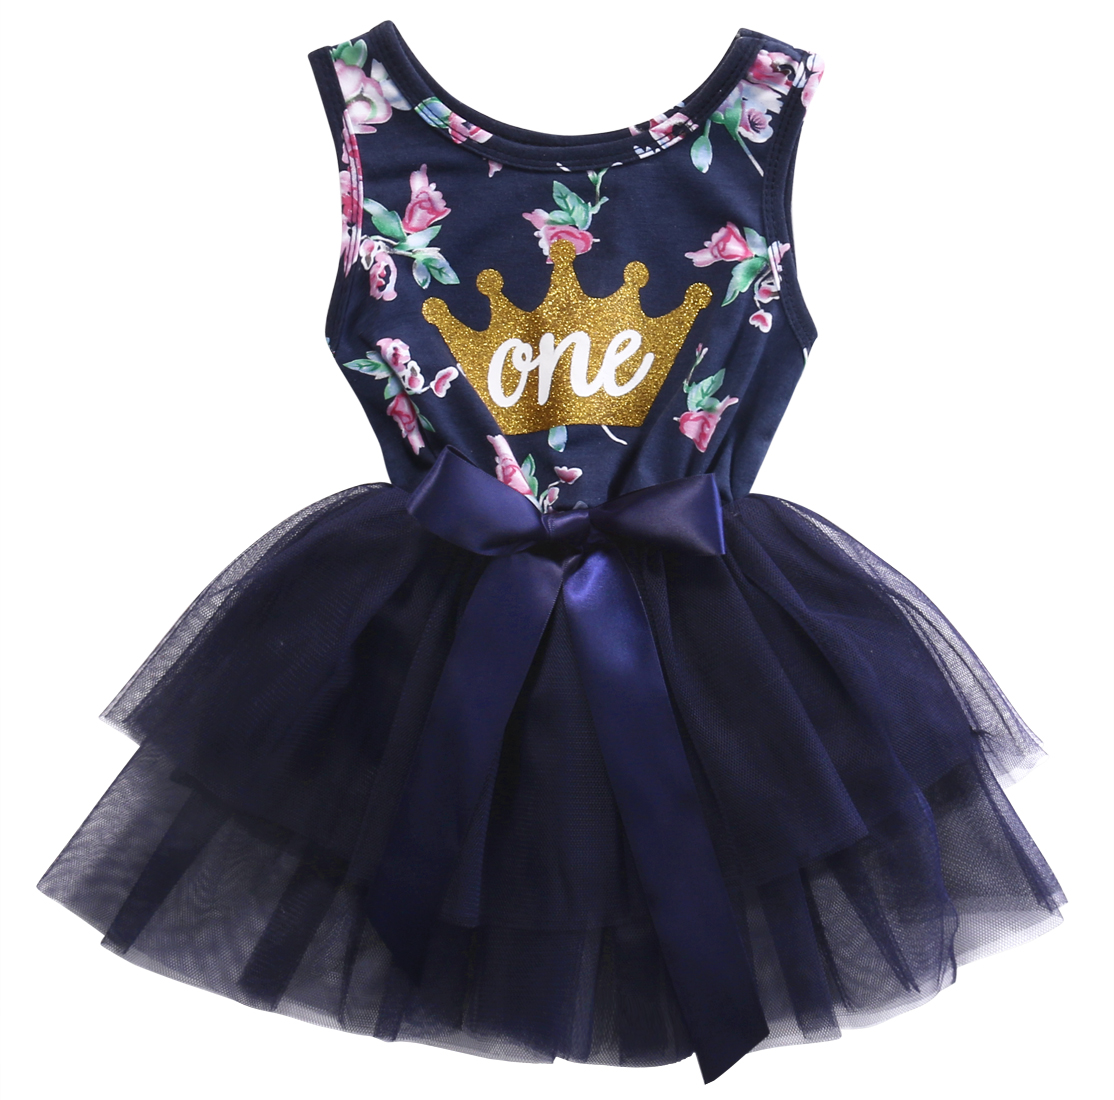 2017 new arrival Summer Newborn Infant Baby Girl clothes Princess Sundress Floral Crown Print Tulle Tutu Ball Gown Party Dresses